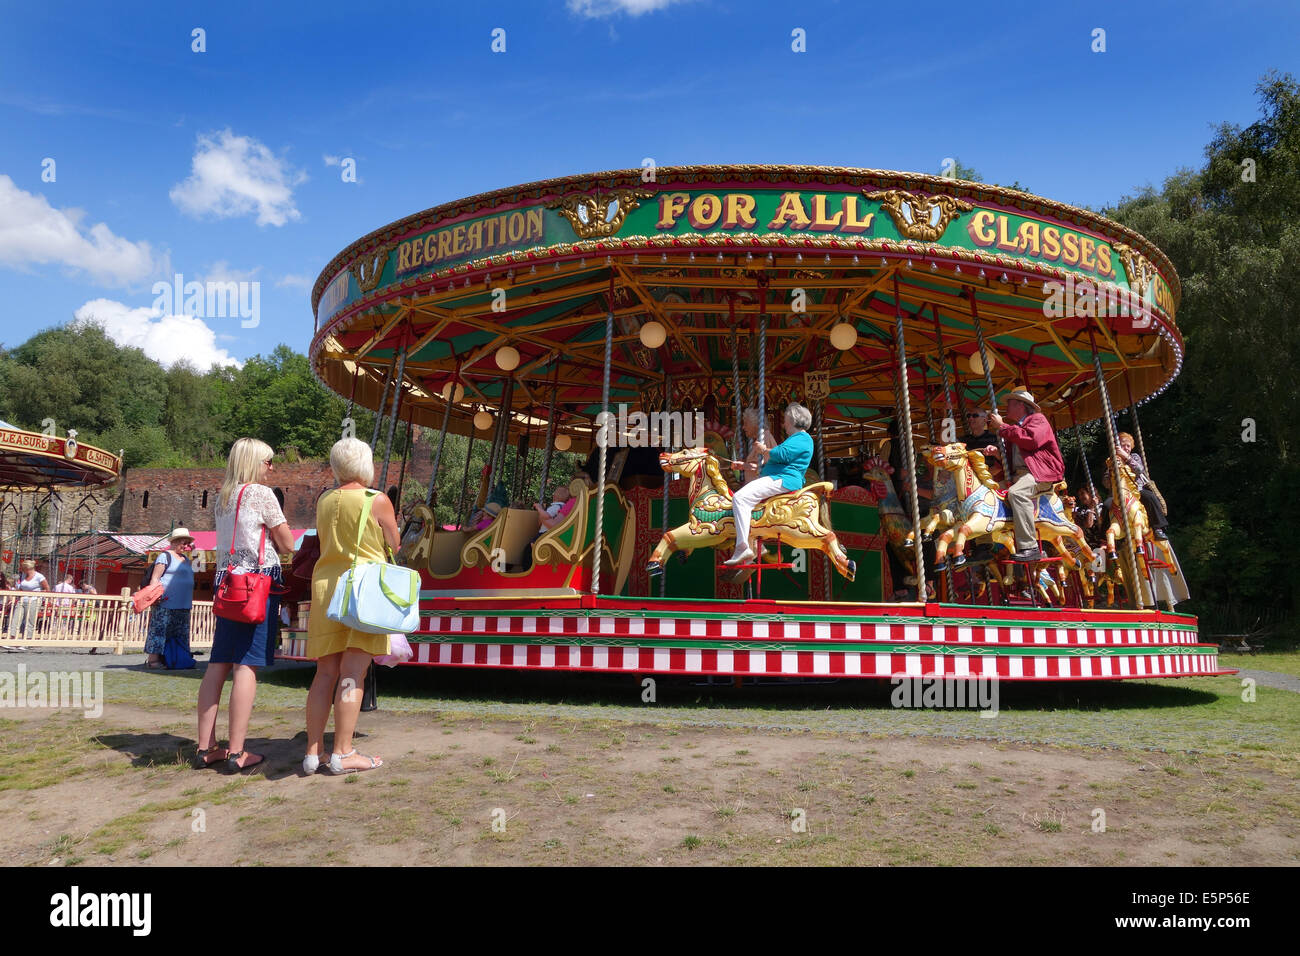 Victorian Rides Stock Photos & Victorian Rides Stock Images - Alamy